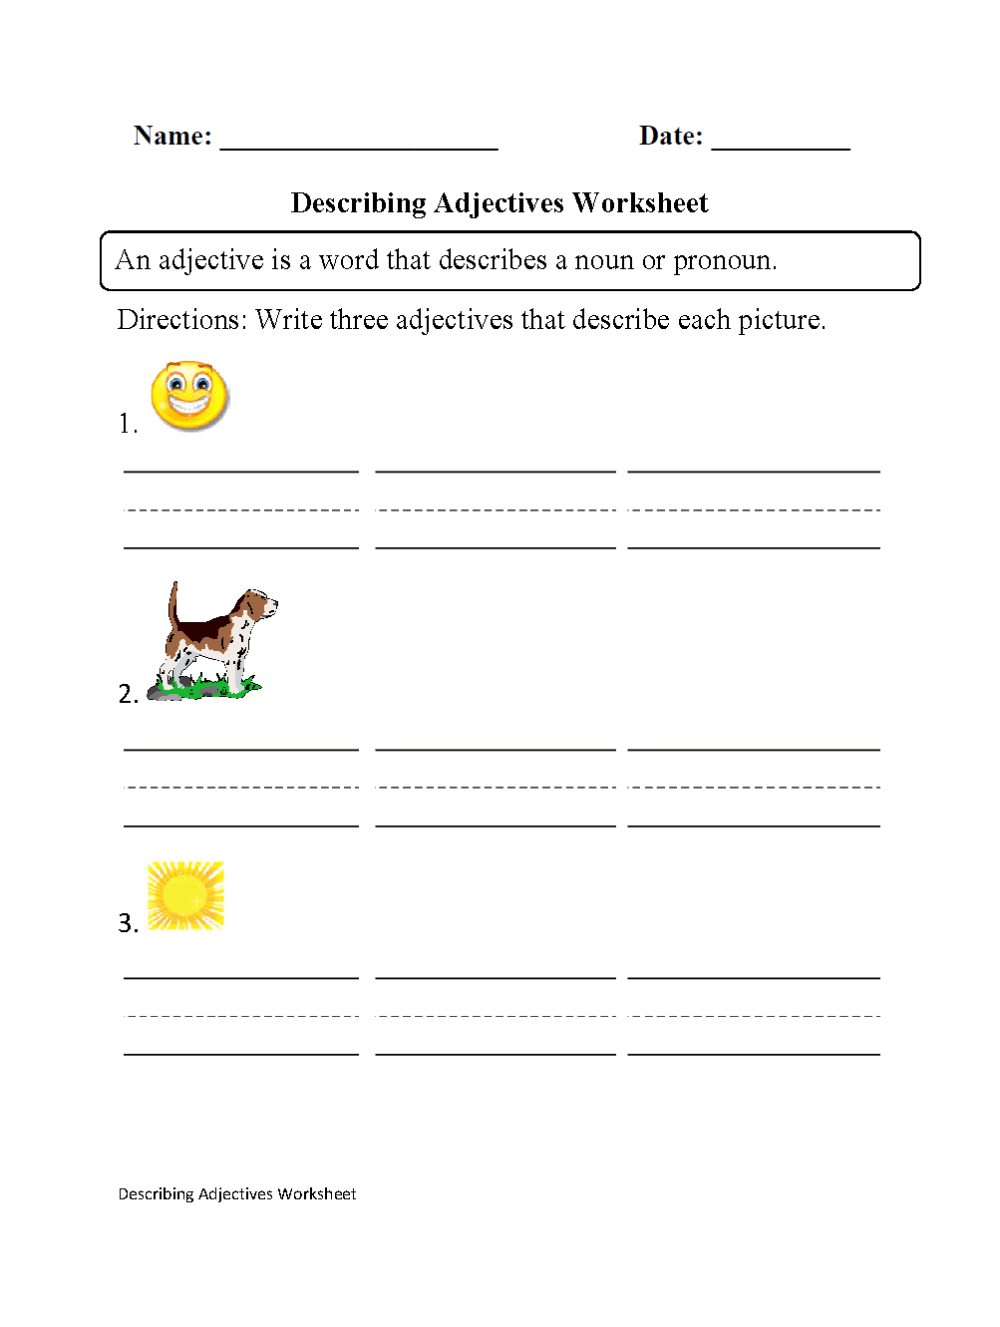 medium resolution of Regular Adjectives Worksheets   Describing Adjectives Worksheet